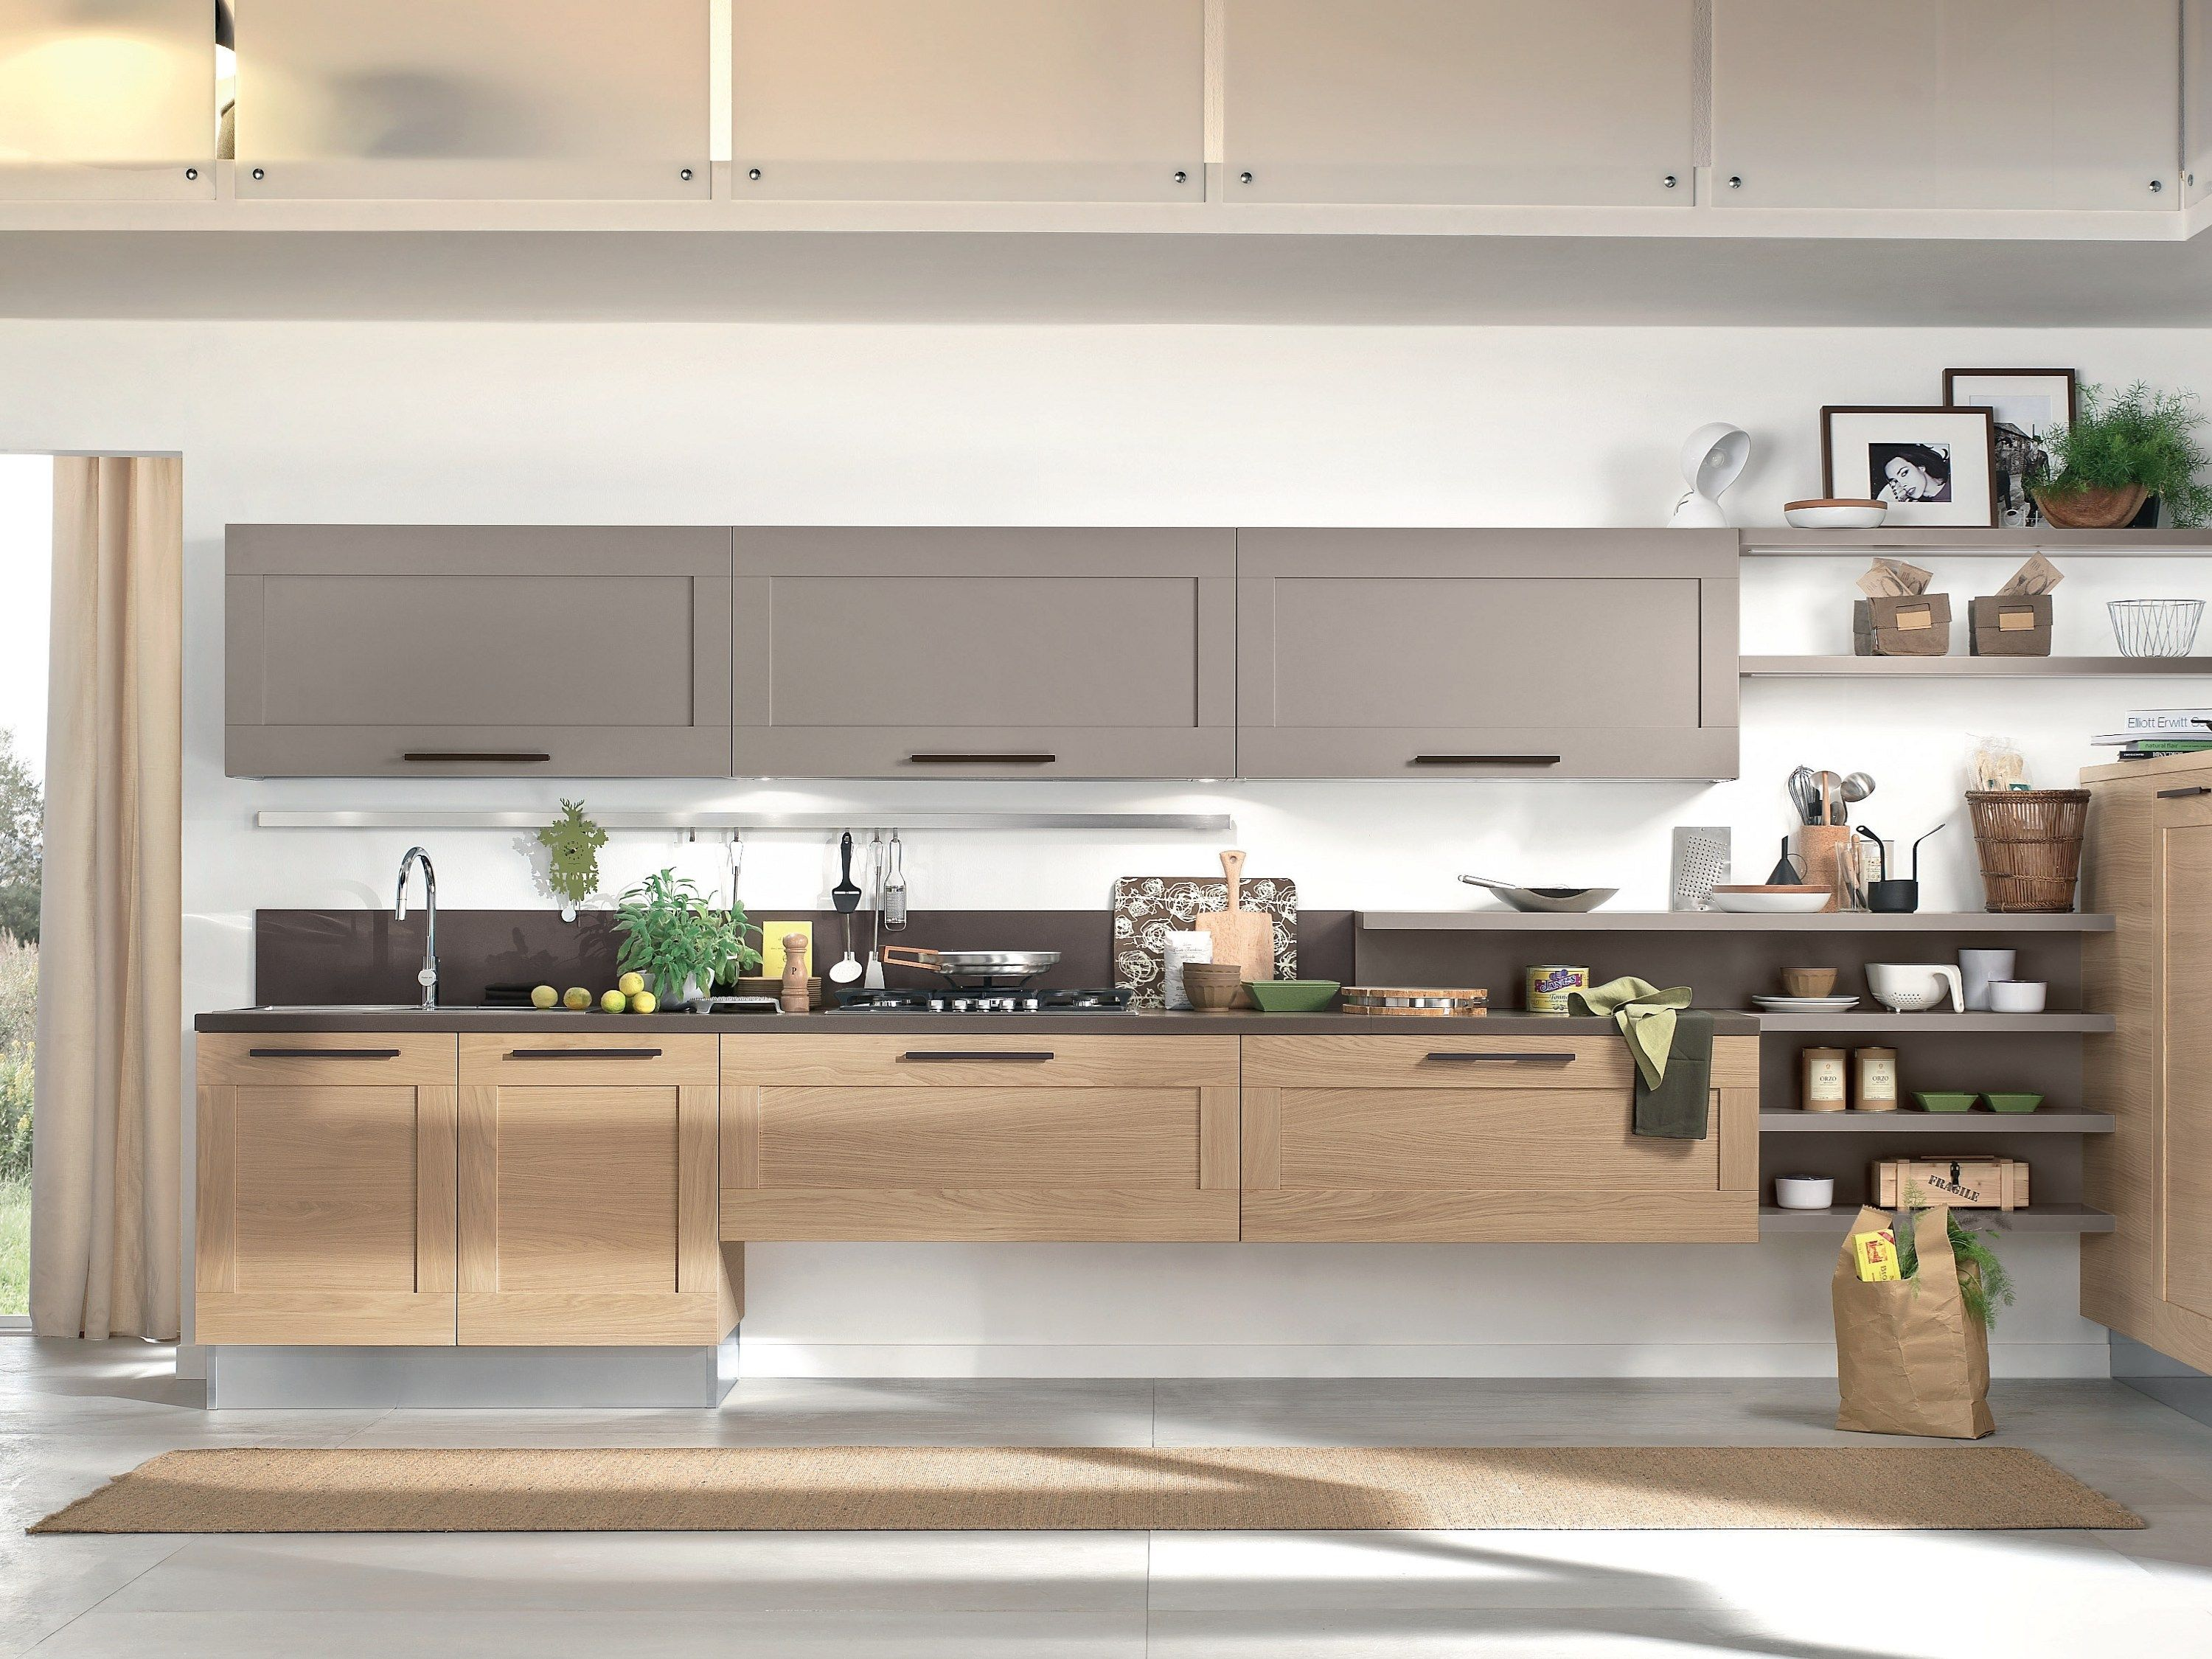 Wooden kitchen with handles Gallery Collection by Cucine Lube | Home ...